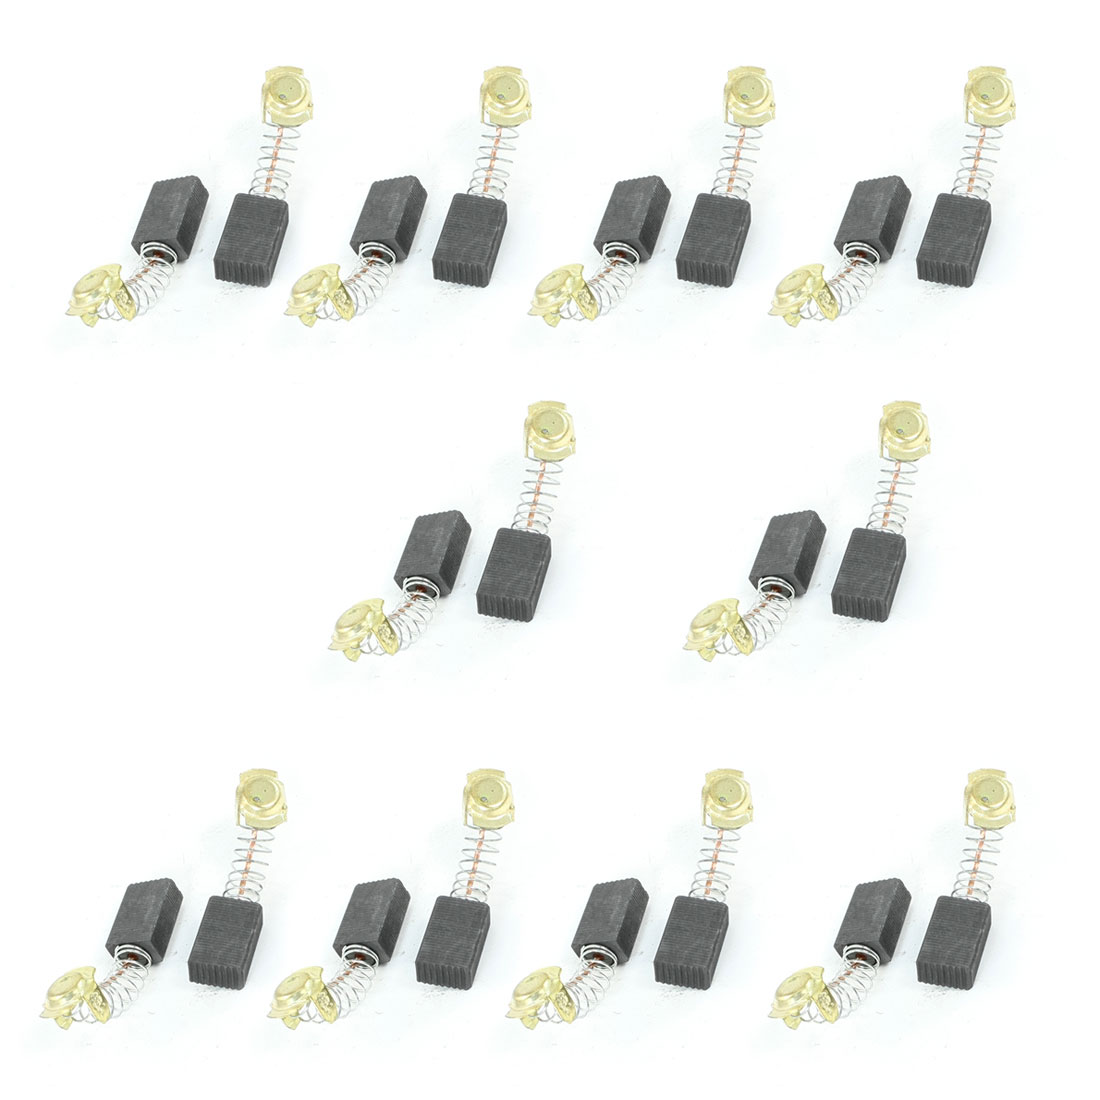 10 Pair 17mm x 11mm x 7mm 999043 Motor Carbon Brushes for Hitachi Power Tool